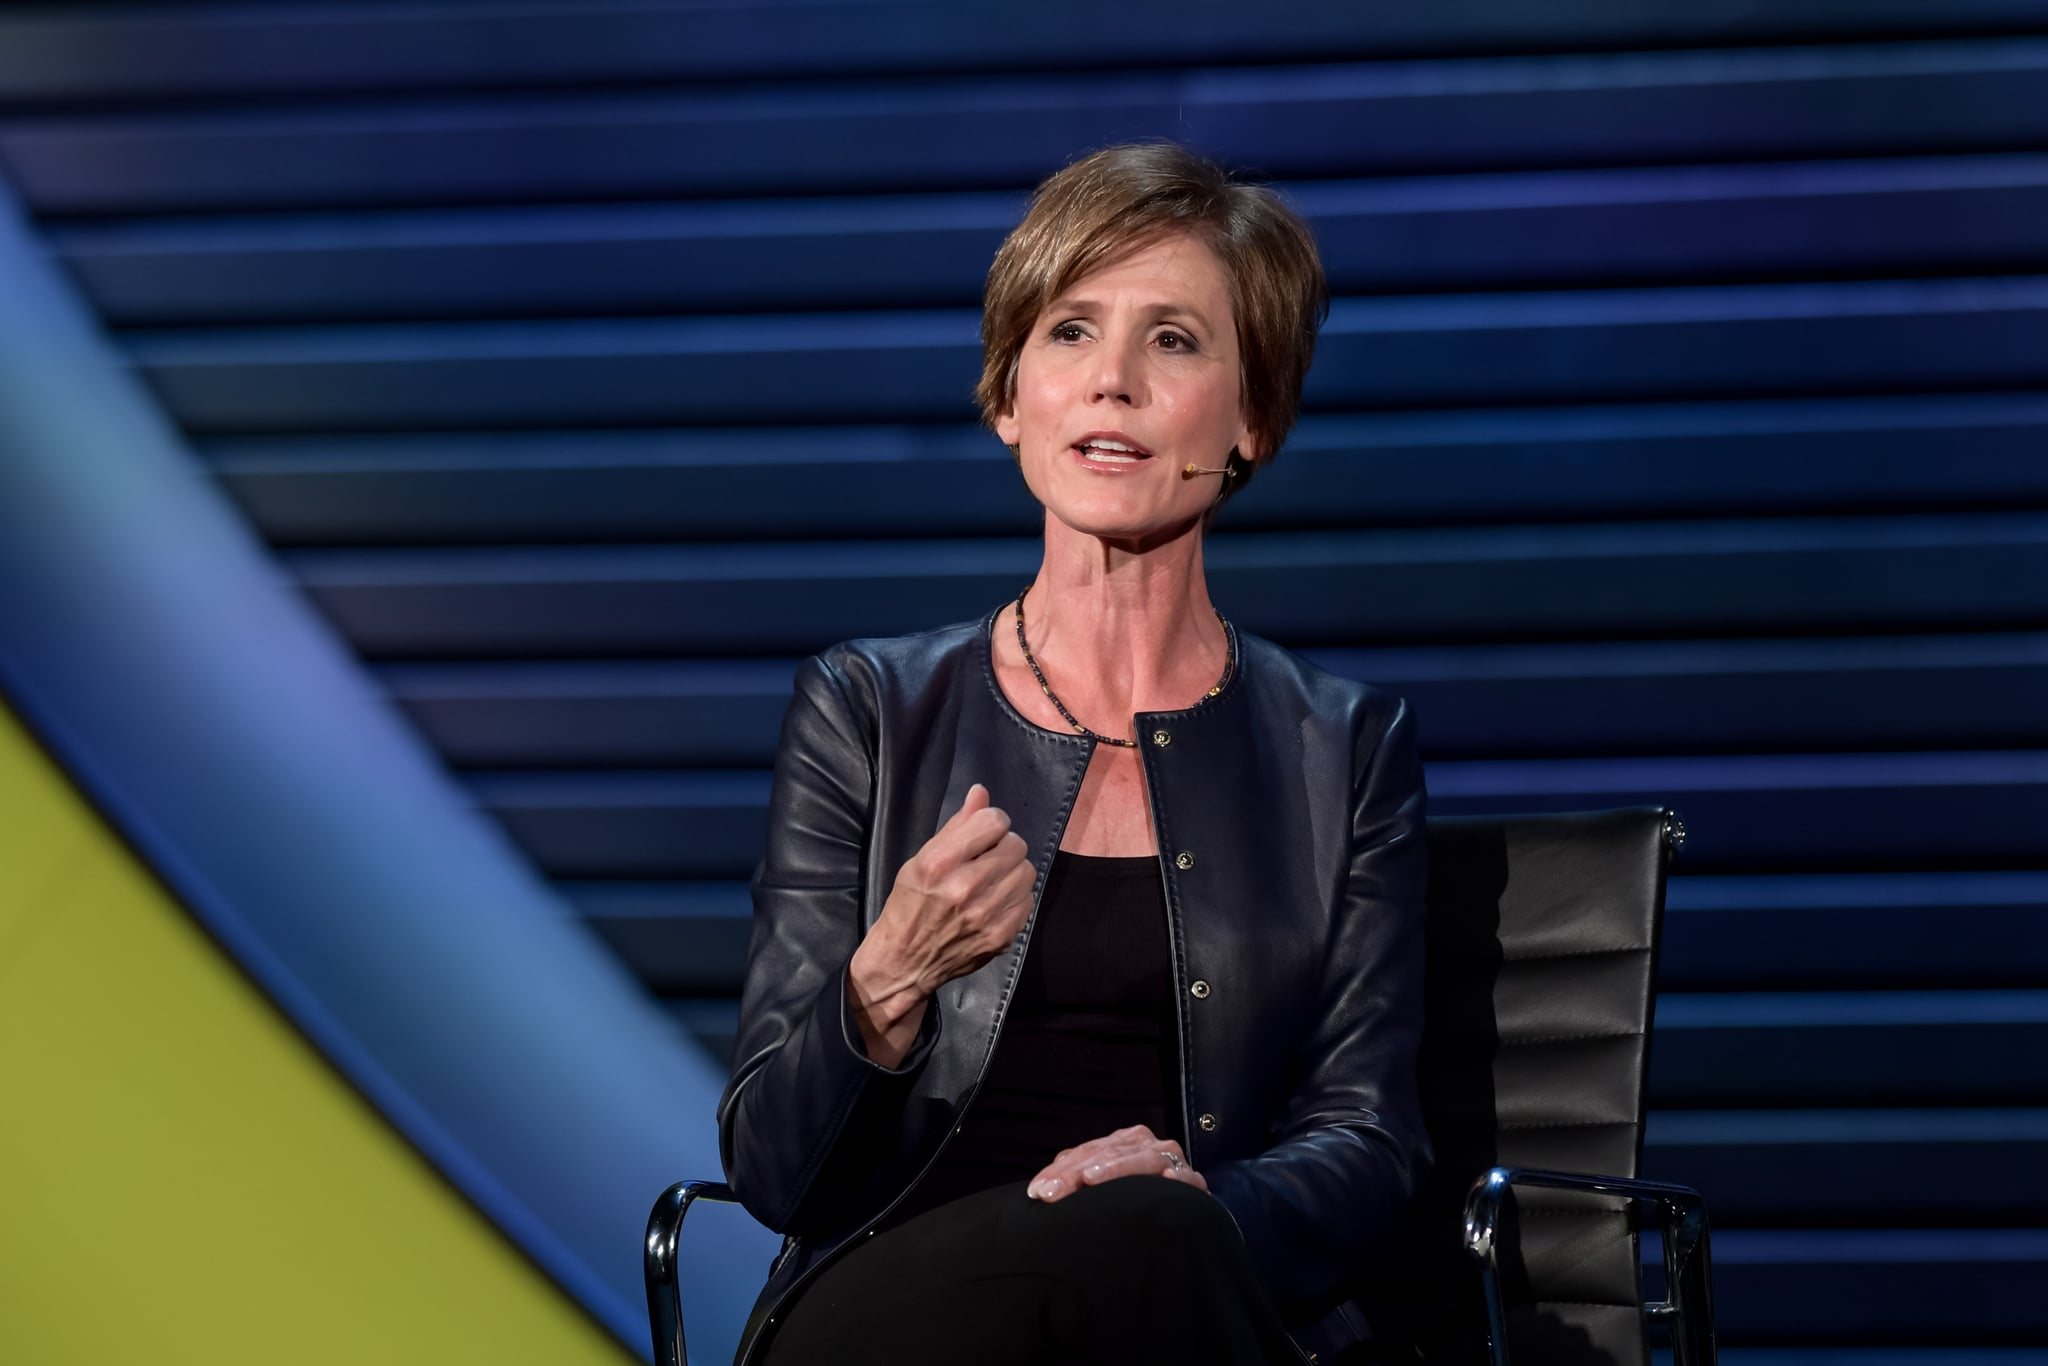 Sally Yates, Distinguished Visitor from Government, Georgetown University Law School; Former Deputy Attorney General on 'THE WOMAN WHO DIDN'T BACK DOWN' at The 2018 Women In The World Summit in New York City; 4/13/2018